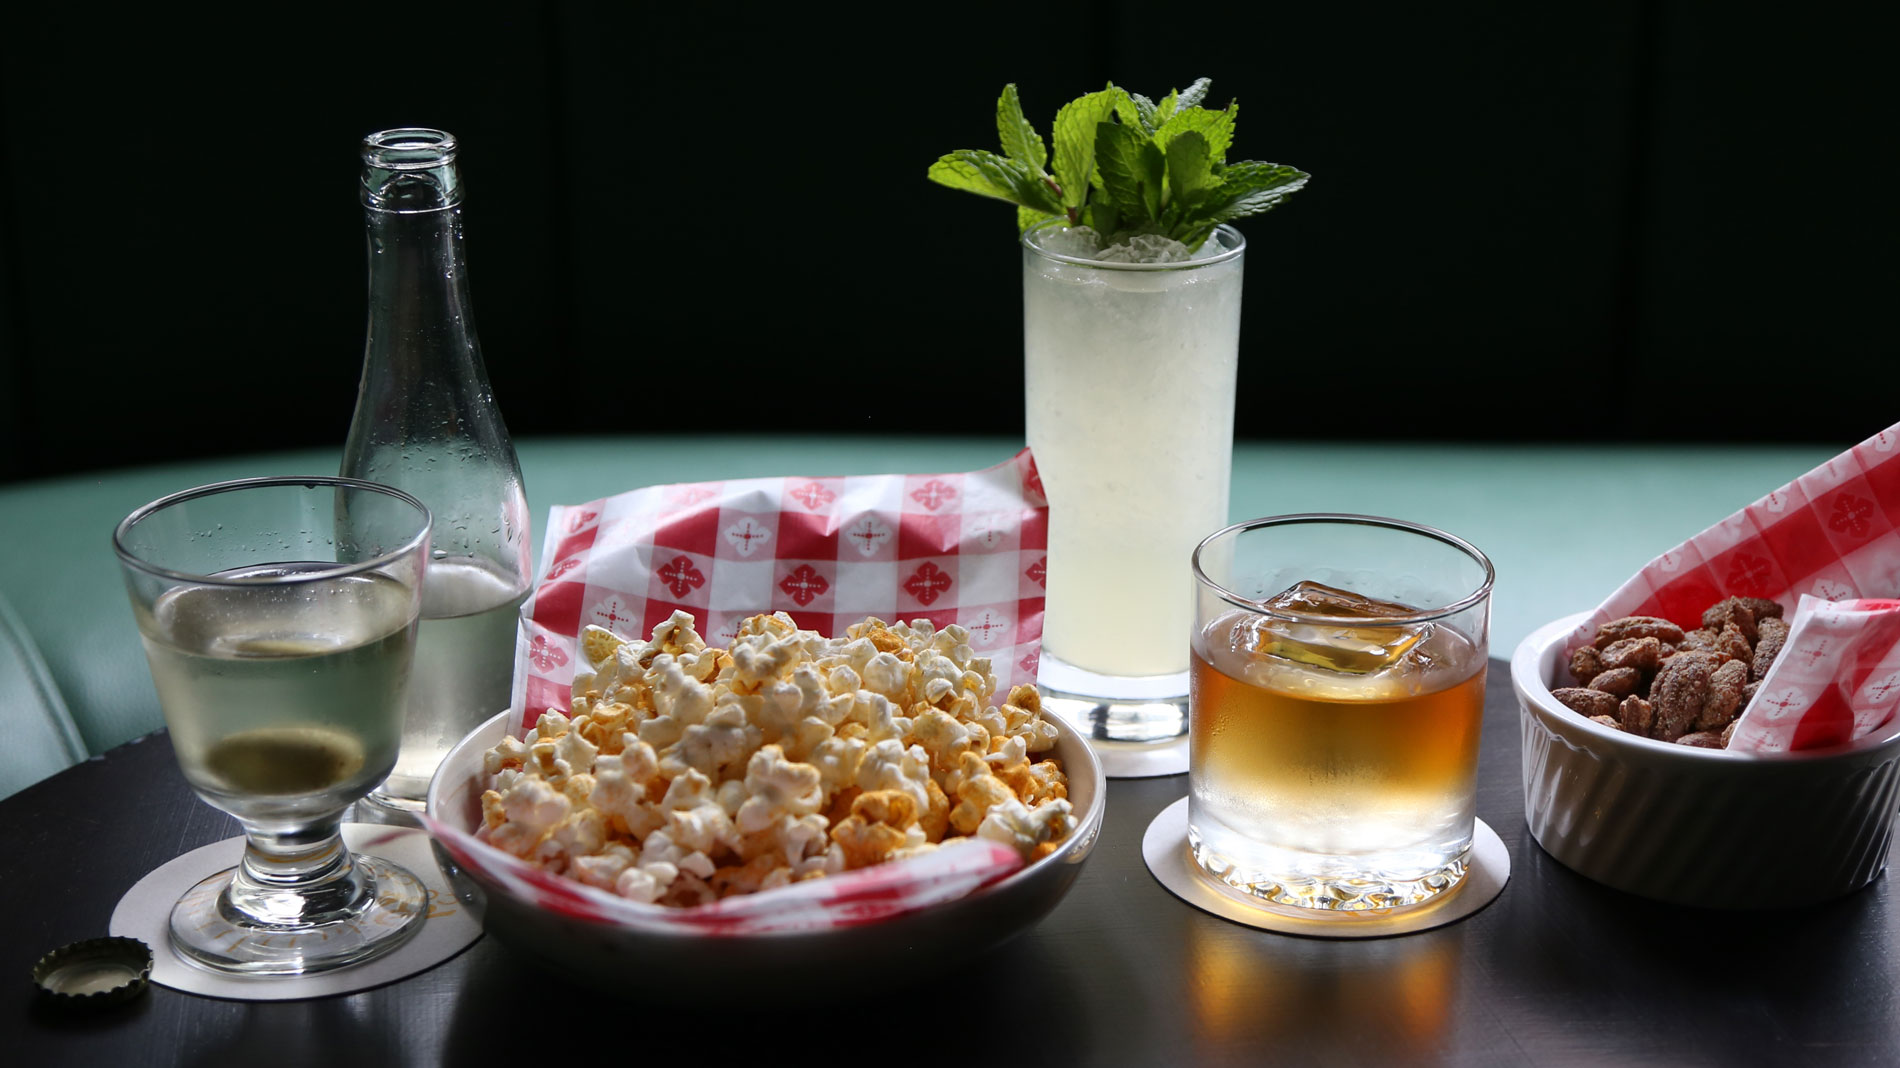 a selection of cocktails and bar snacks on a table